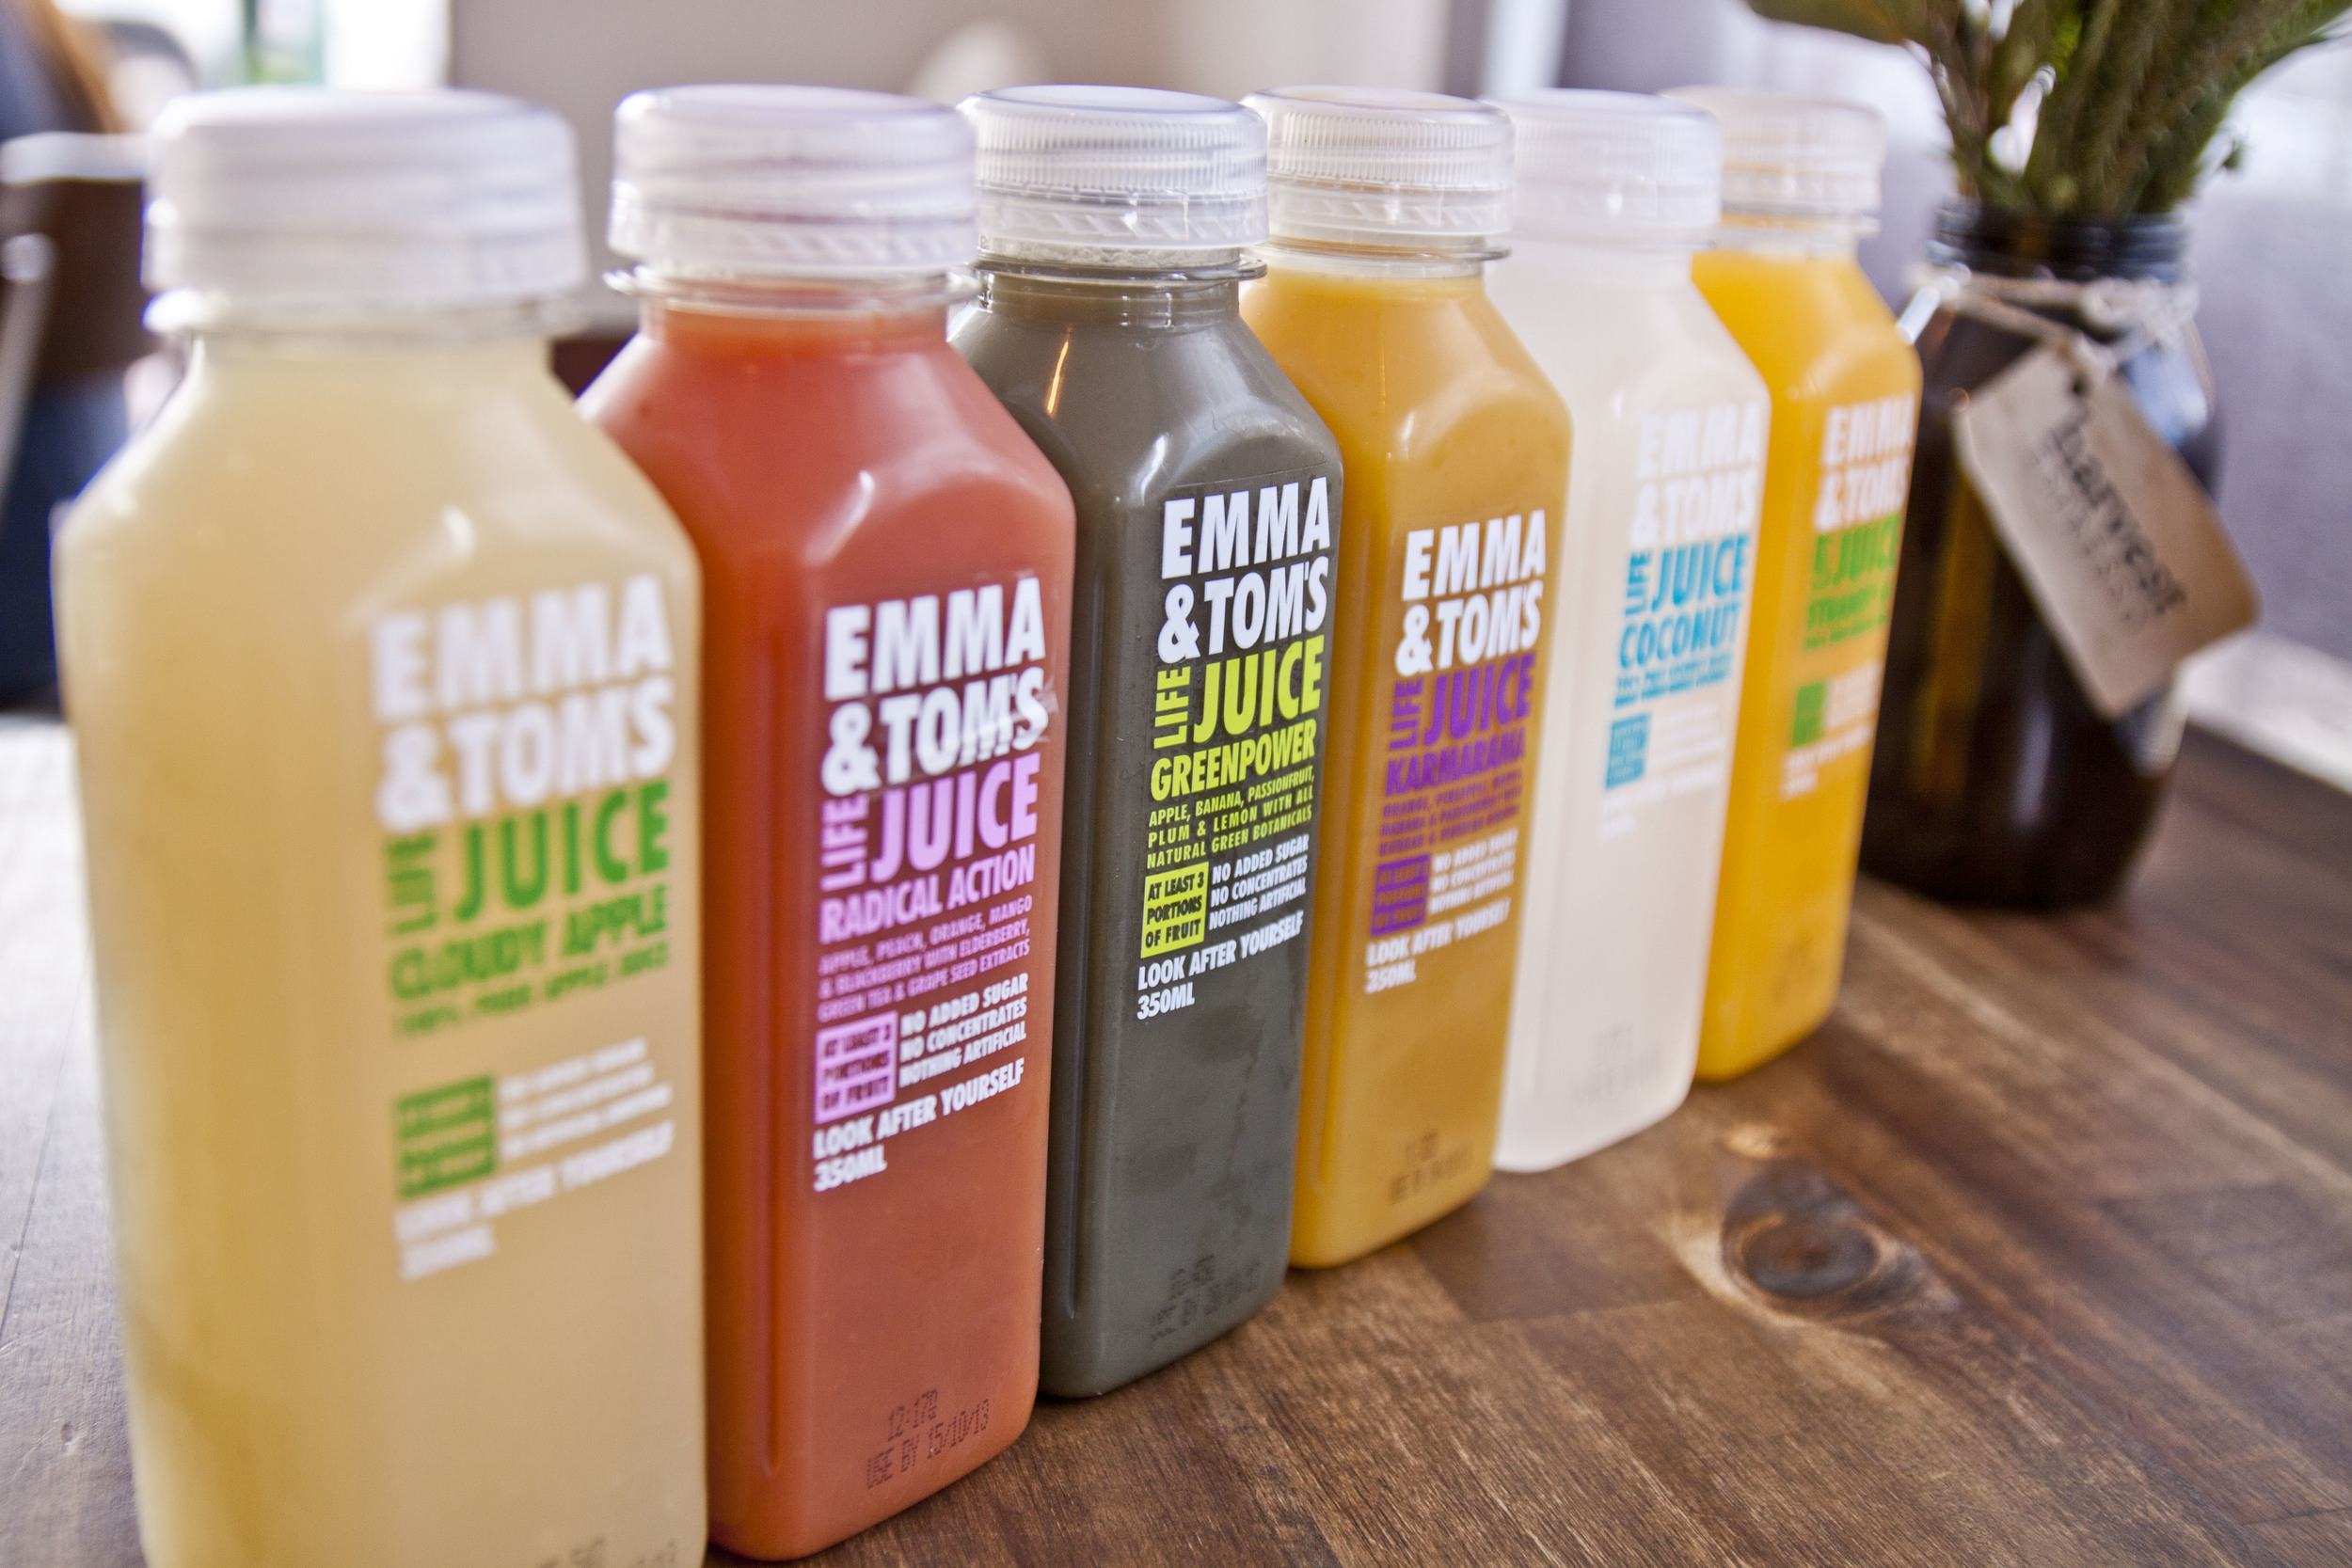 Emma & Toms Fresh Life Juices for $4.50